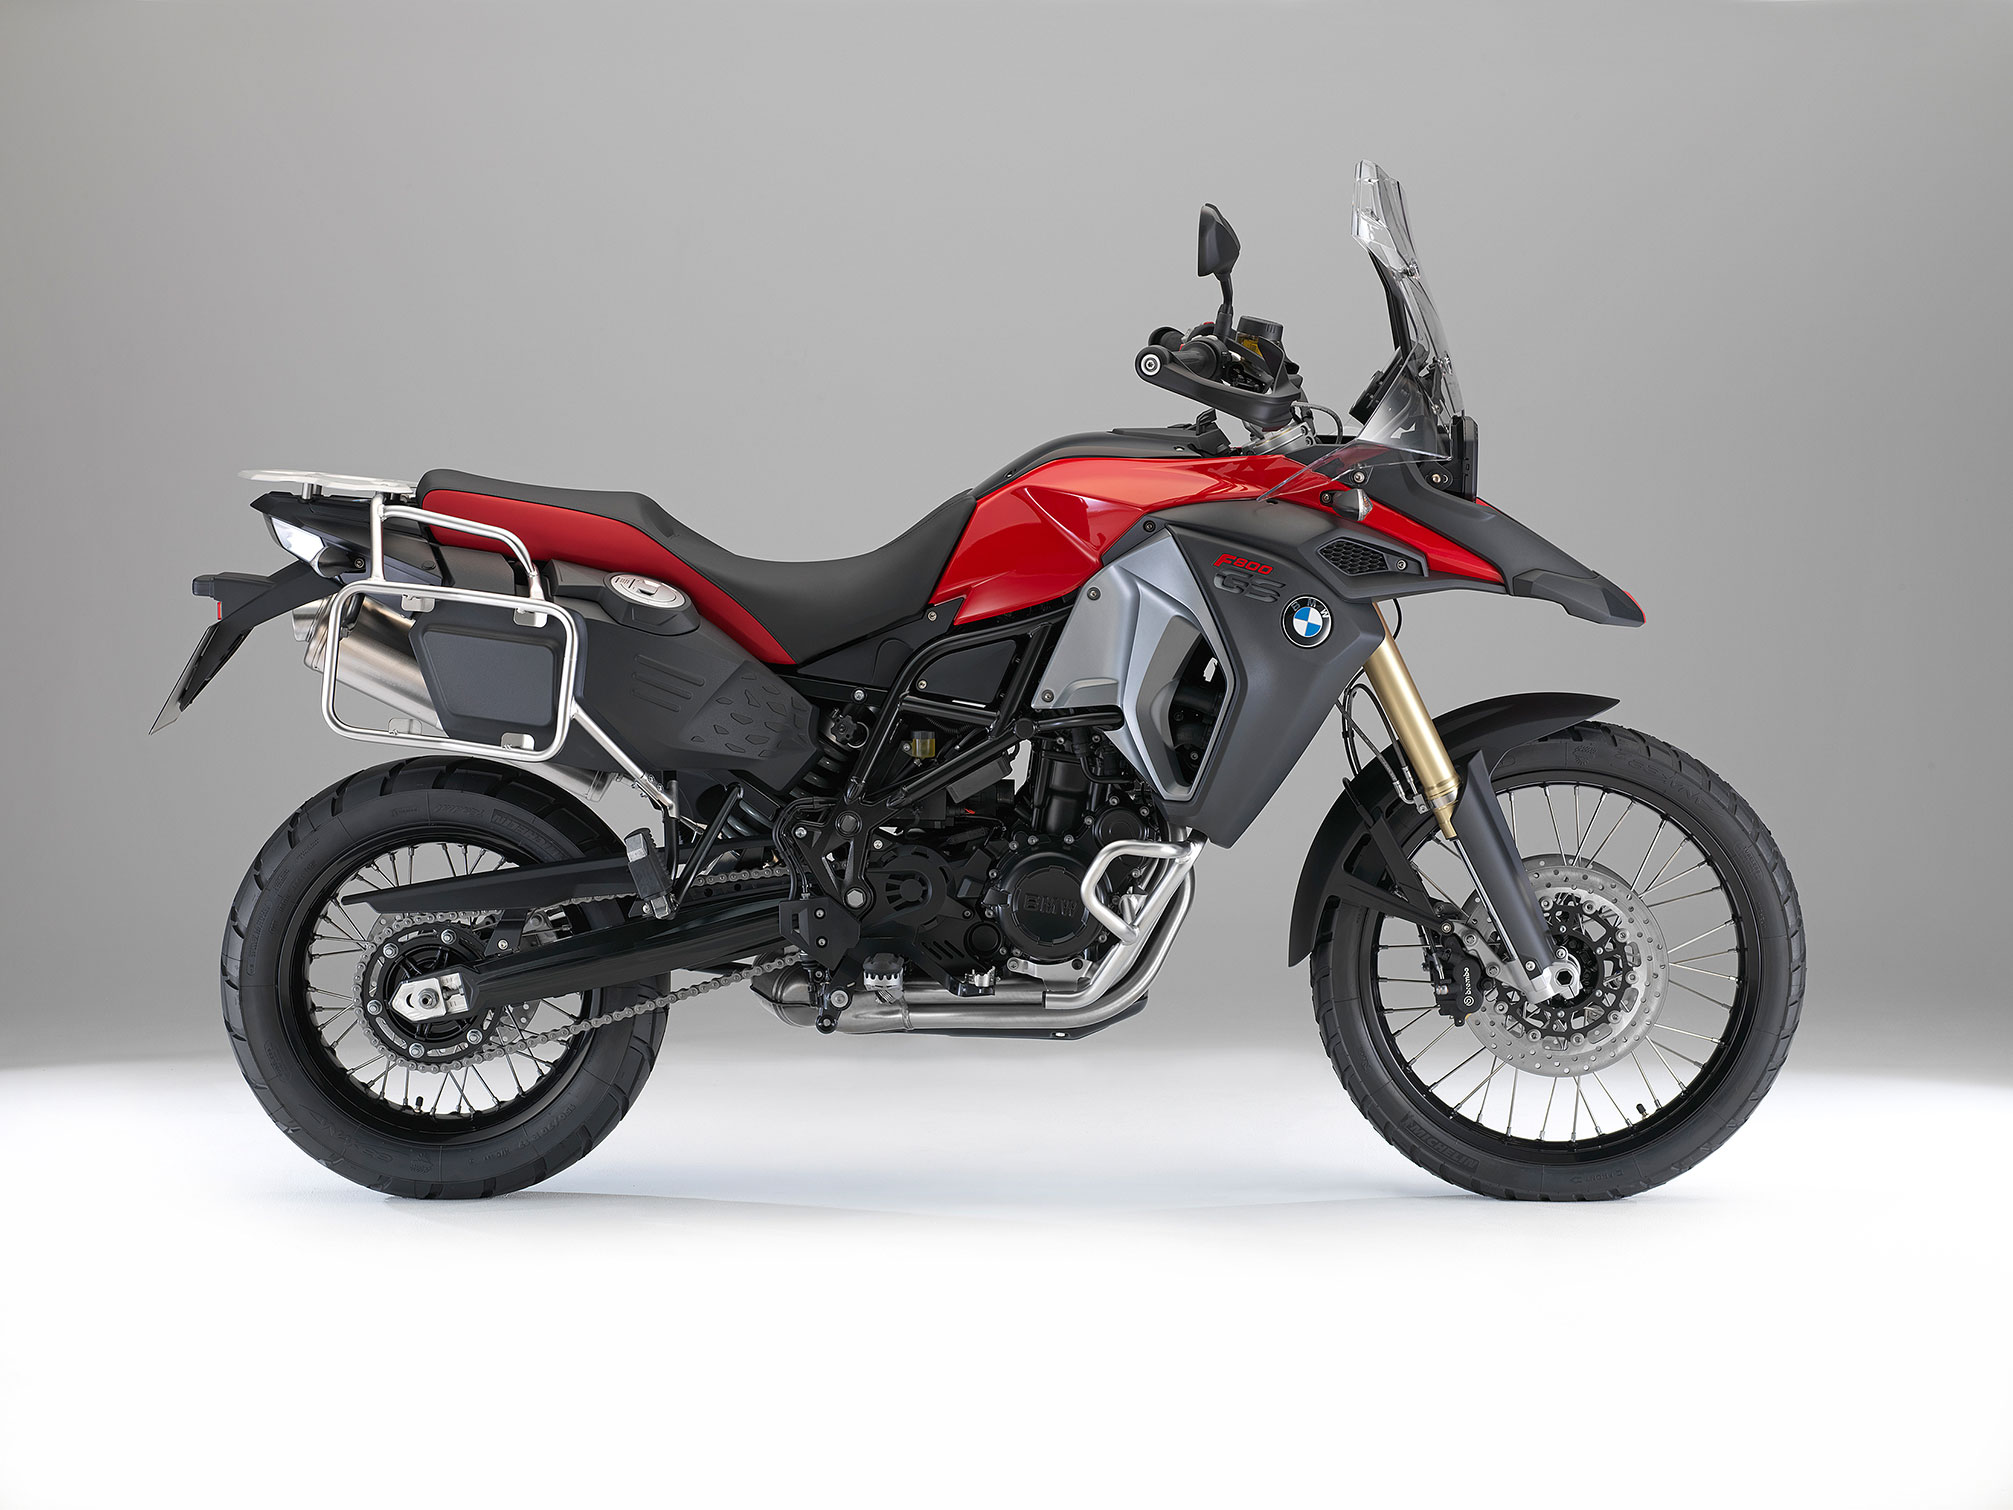 bmw f 800 gs adventure specs 2012 2013 autoevolution. Black Bedroom Furniture Sets. Home Design Ideas